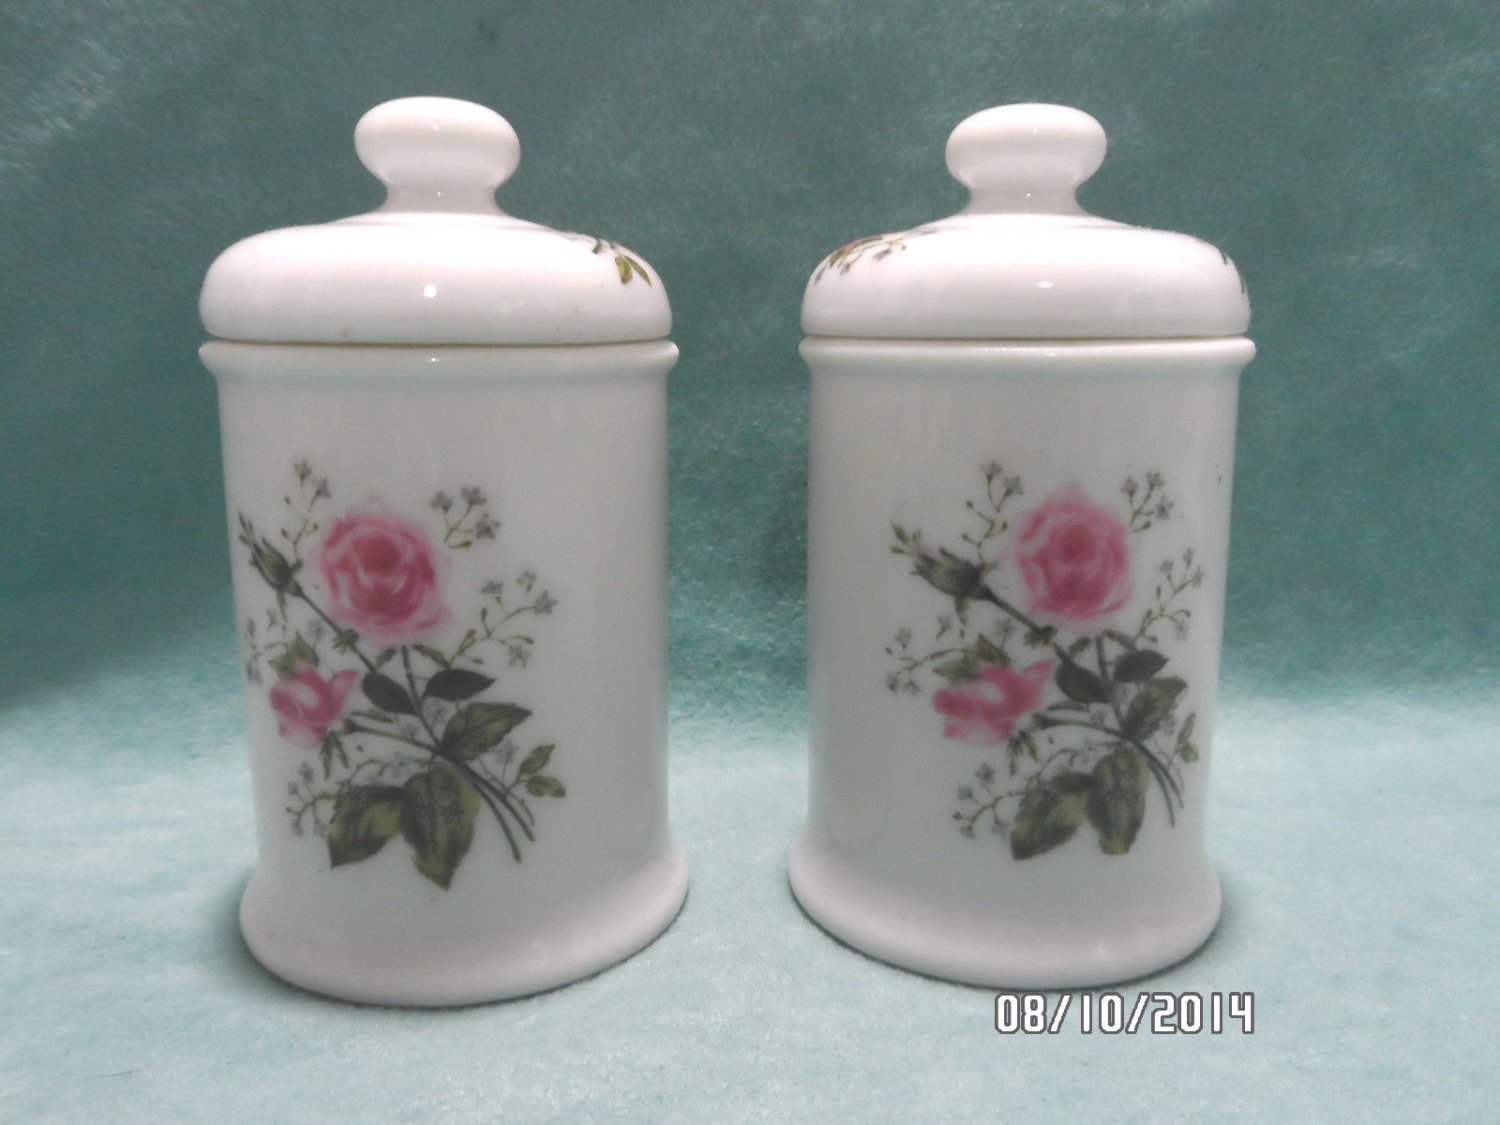 Lefton Vanity Jars with Lids White Porcelain with Pink Roses made in japan